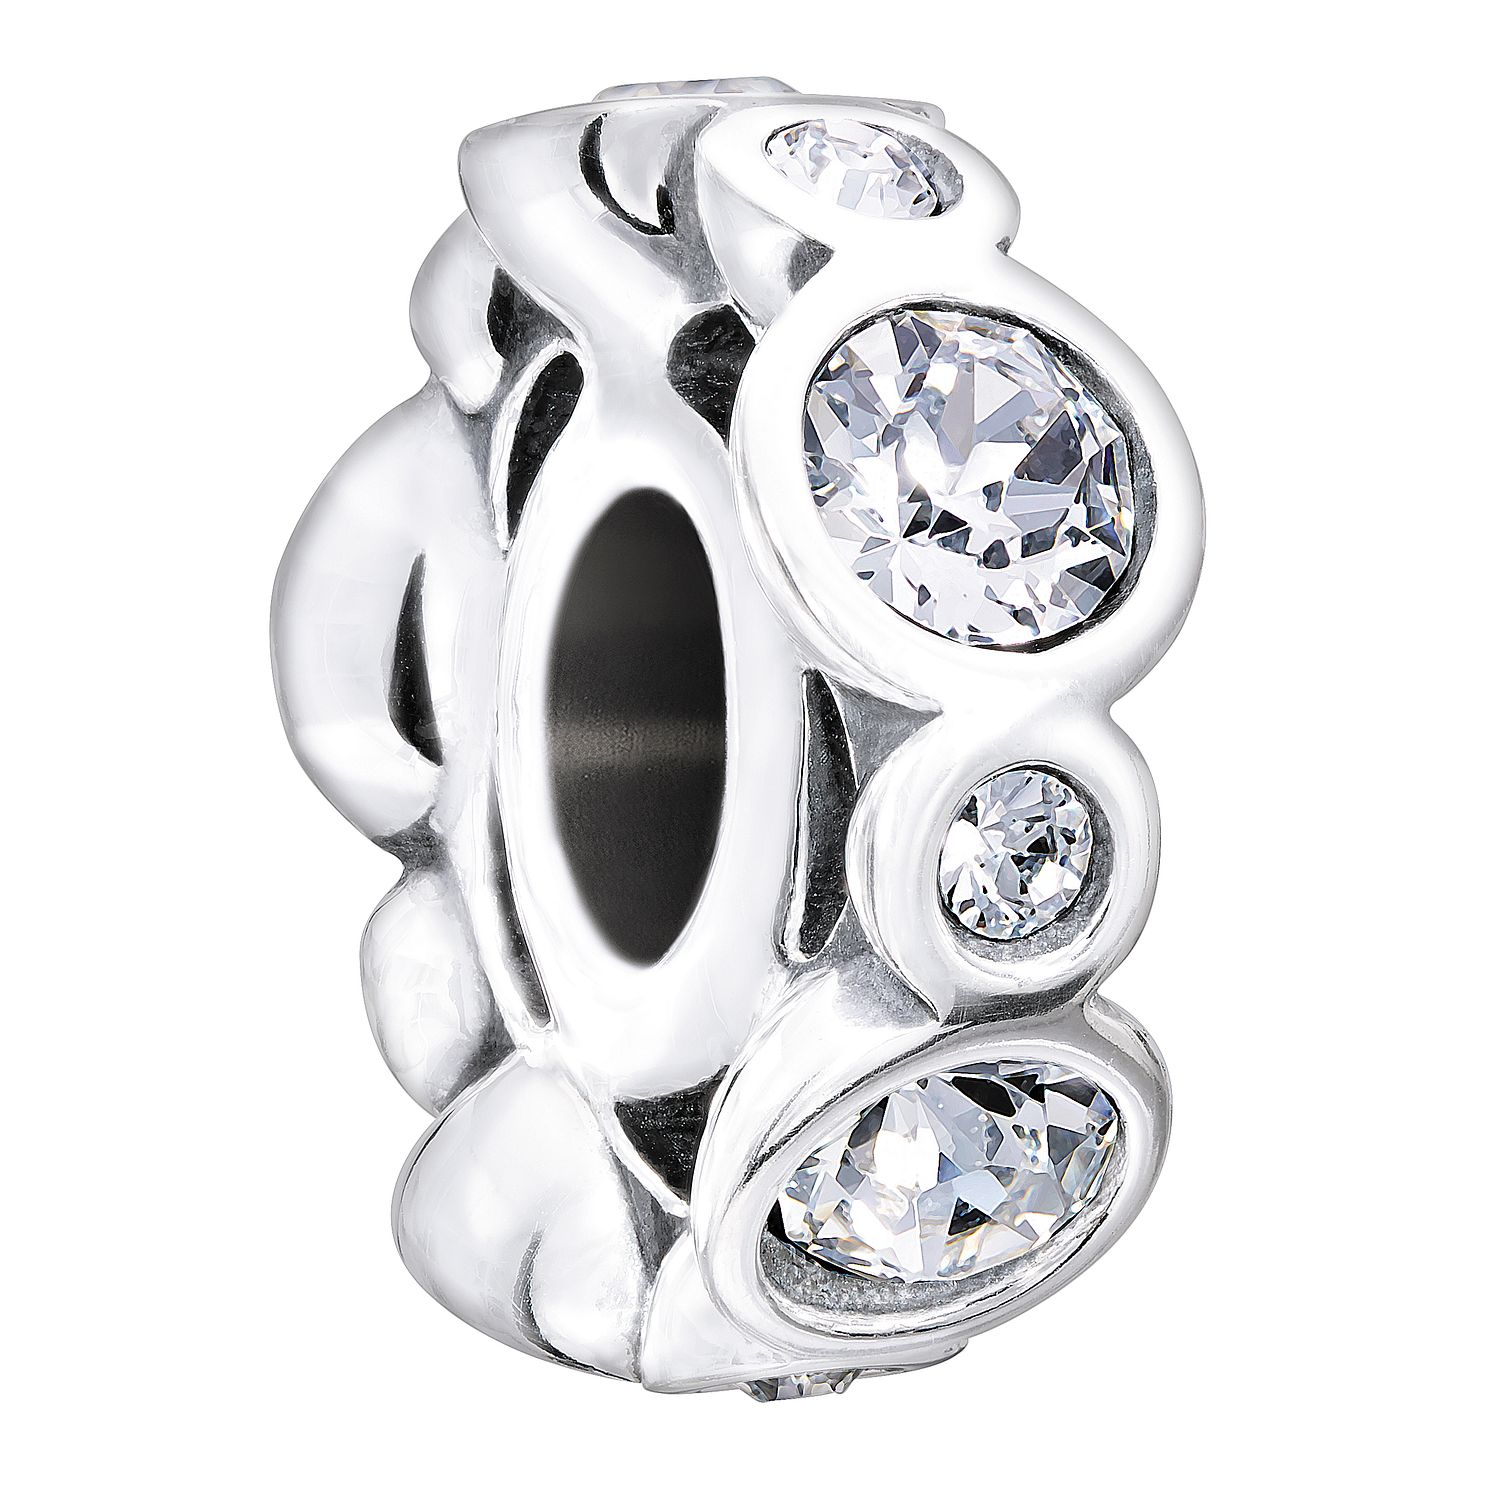 Chamilia Birthstone Jewels April Swarovski Crystal Charm - Product number 1485636